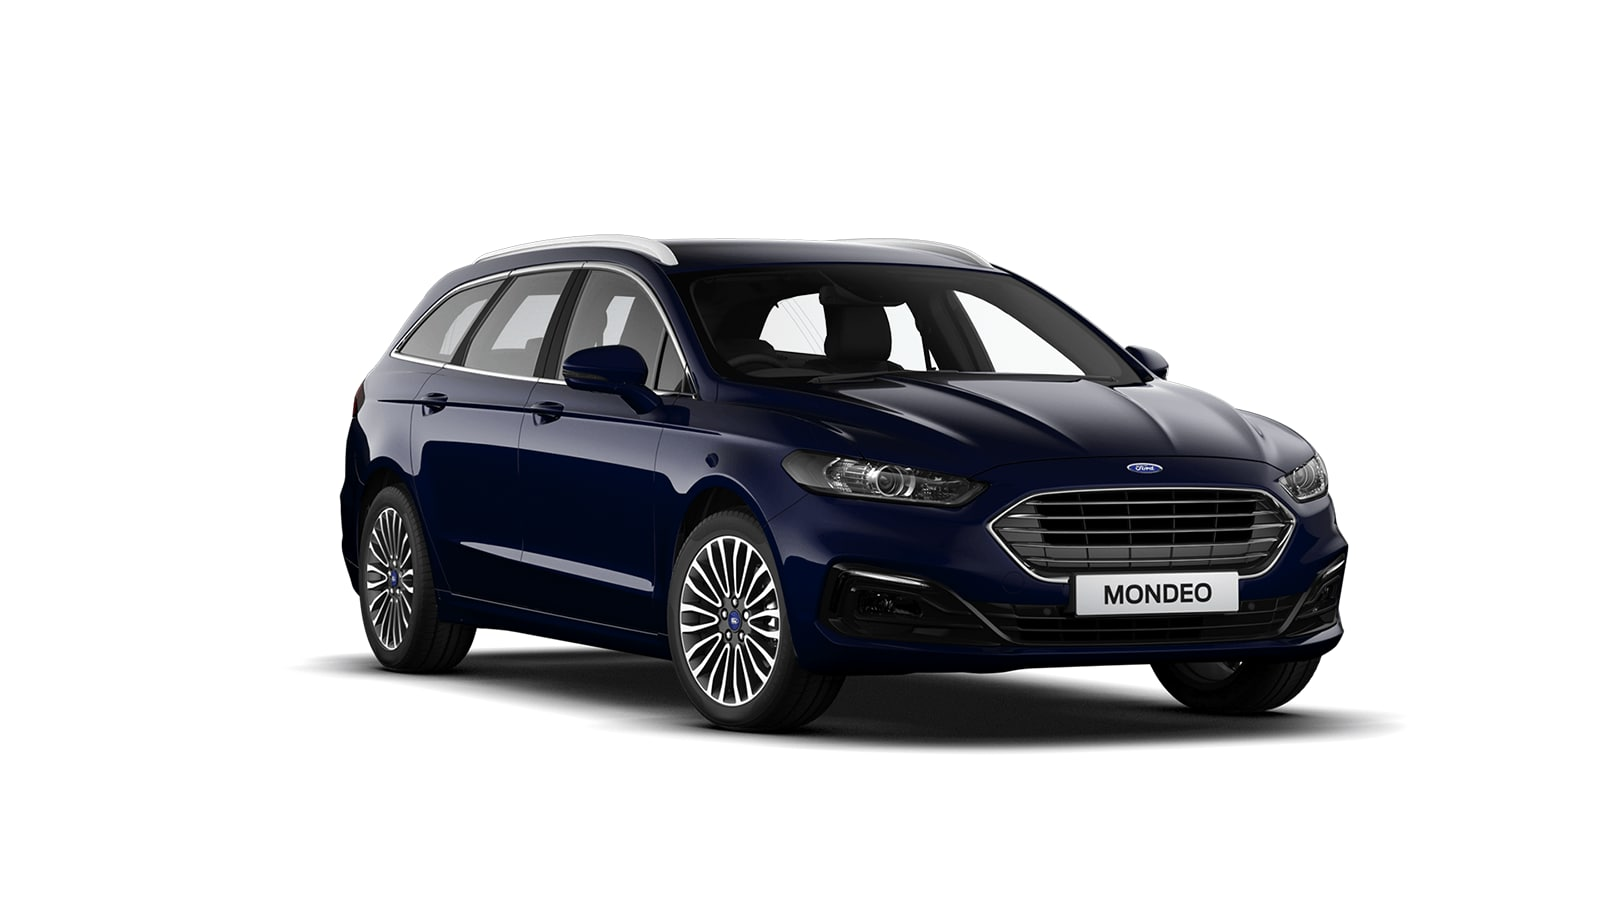 Ford Mondeo Titanium Edition 2.0L EcoBlue 190PS at Browne & Day